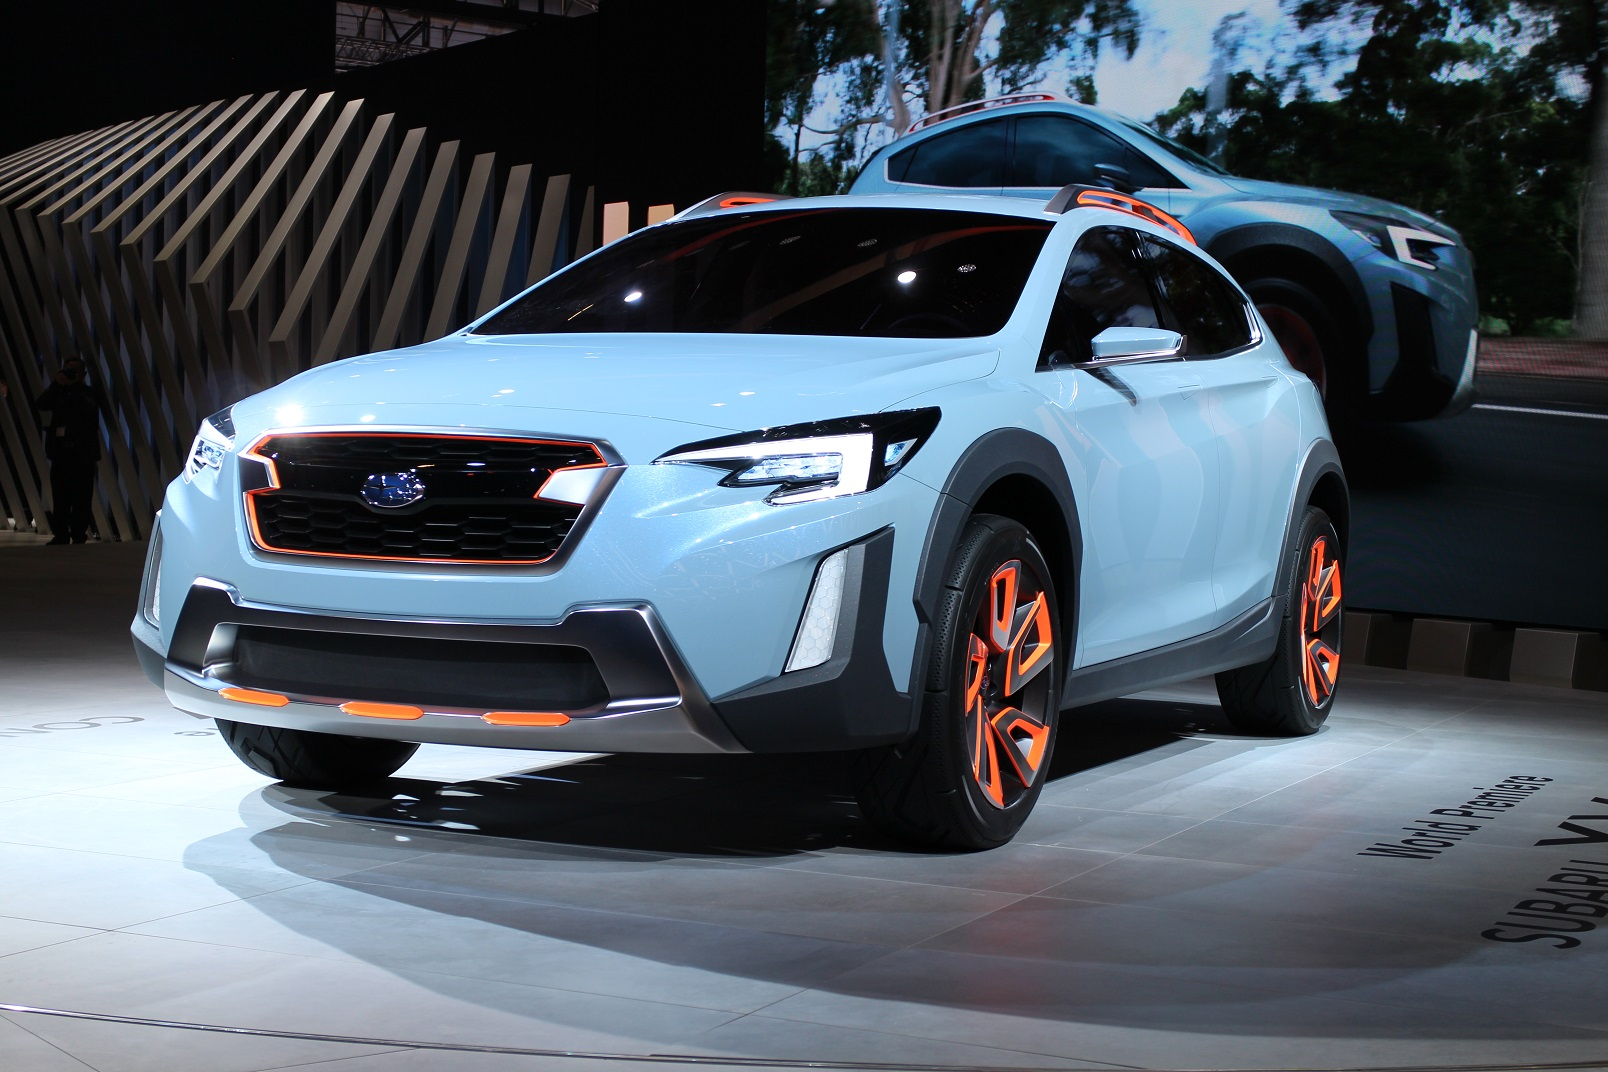 subaru xv concept hints at next crosstrek due for 2018 model year. Black Bedroom Furniture Sets. Home Design Ideas